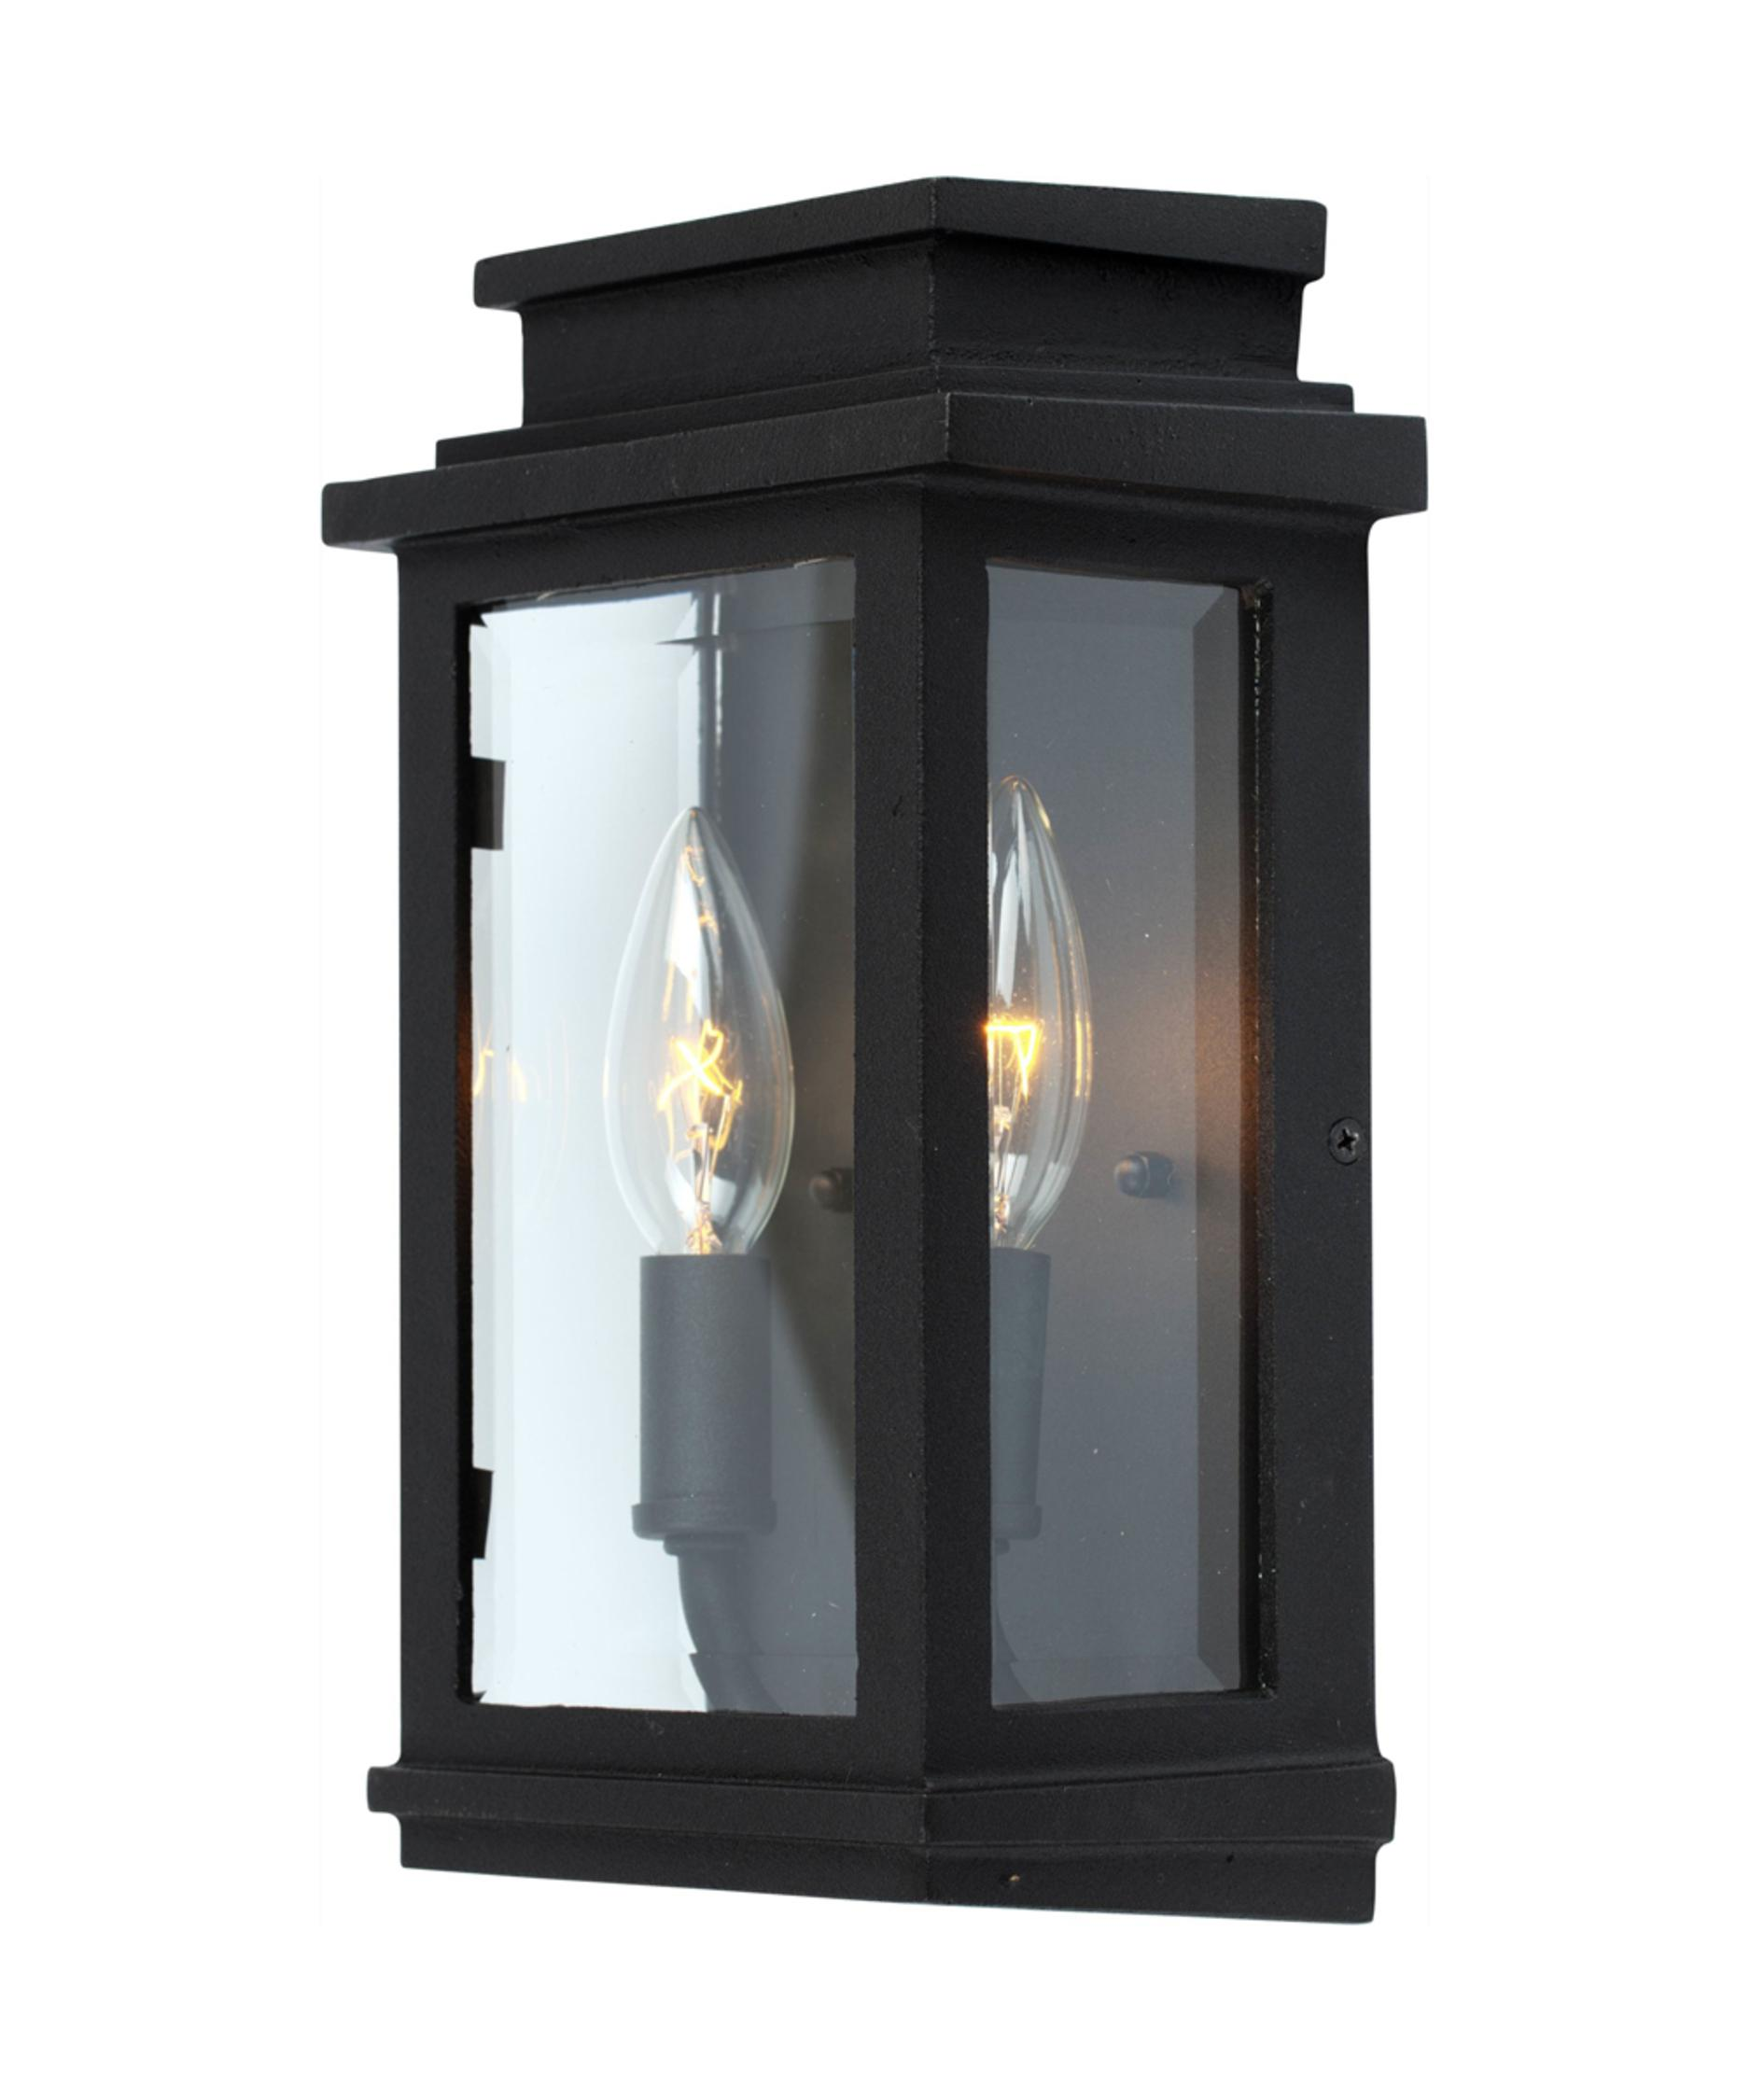 artcraft fremont 7 inch wide 2 light outdoor wall light capitol carriage lights outdoor warisan lighting